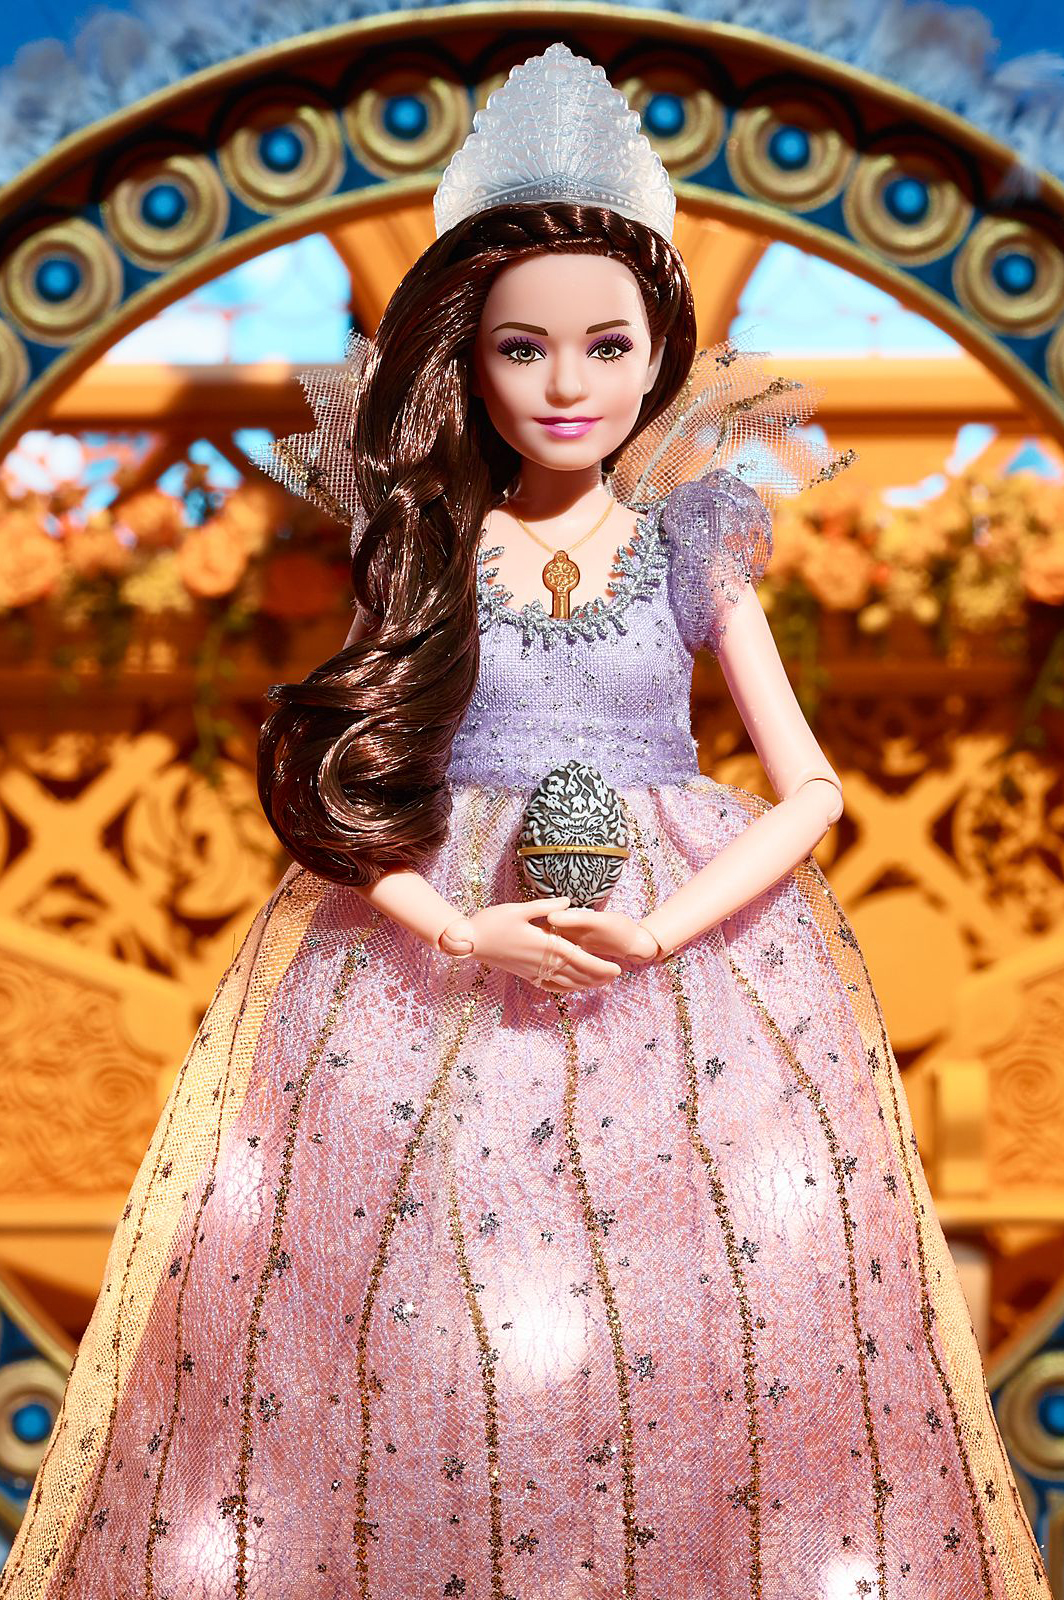 Barbie The Nutcracker And The Four Realms Dolls Photos In Hd And